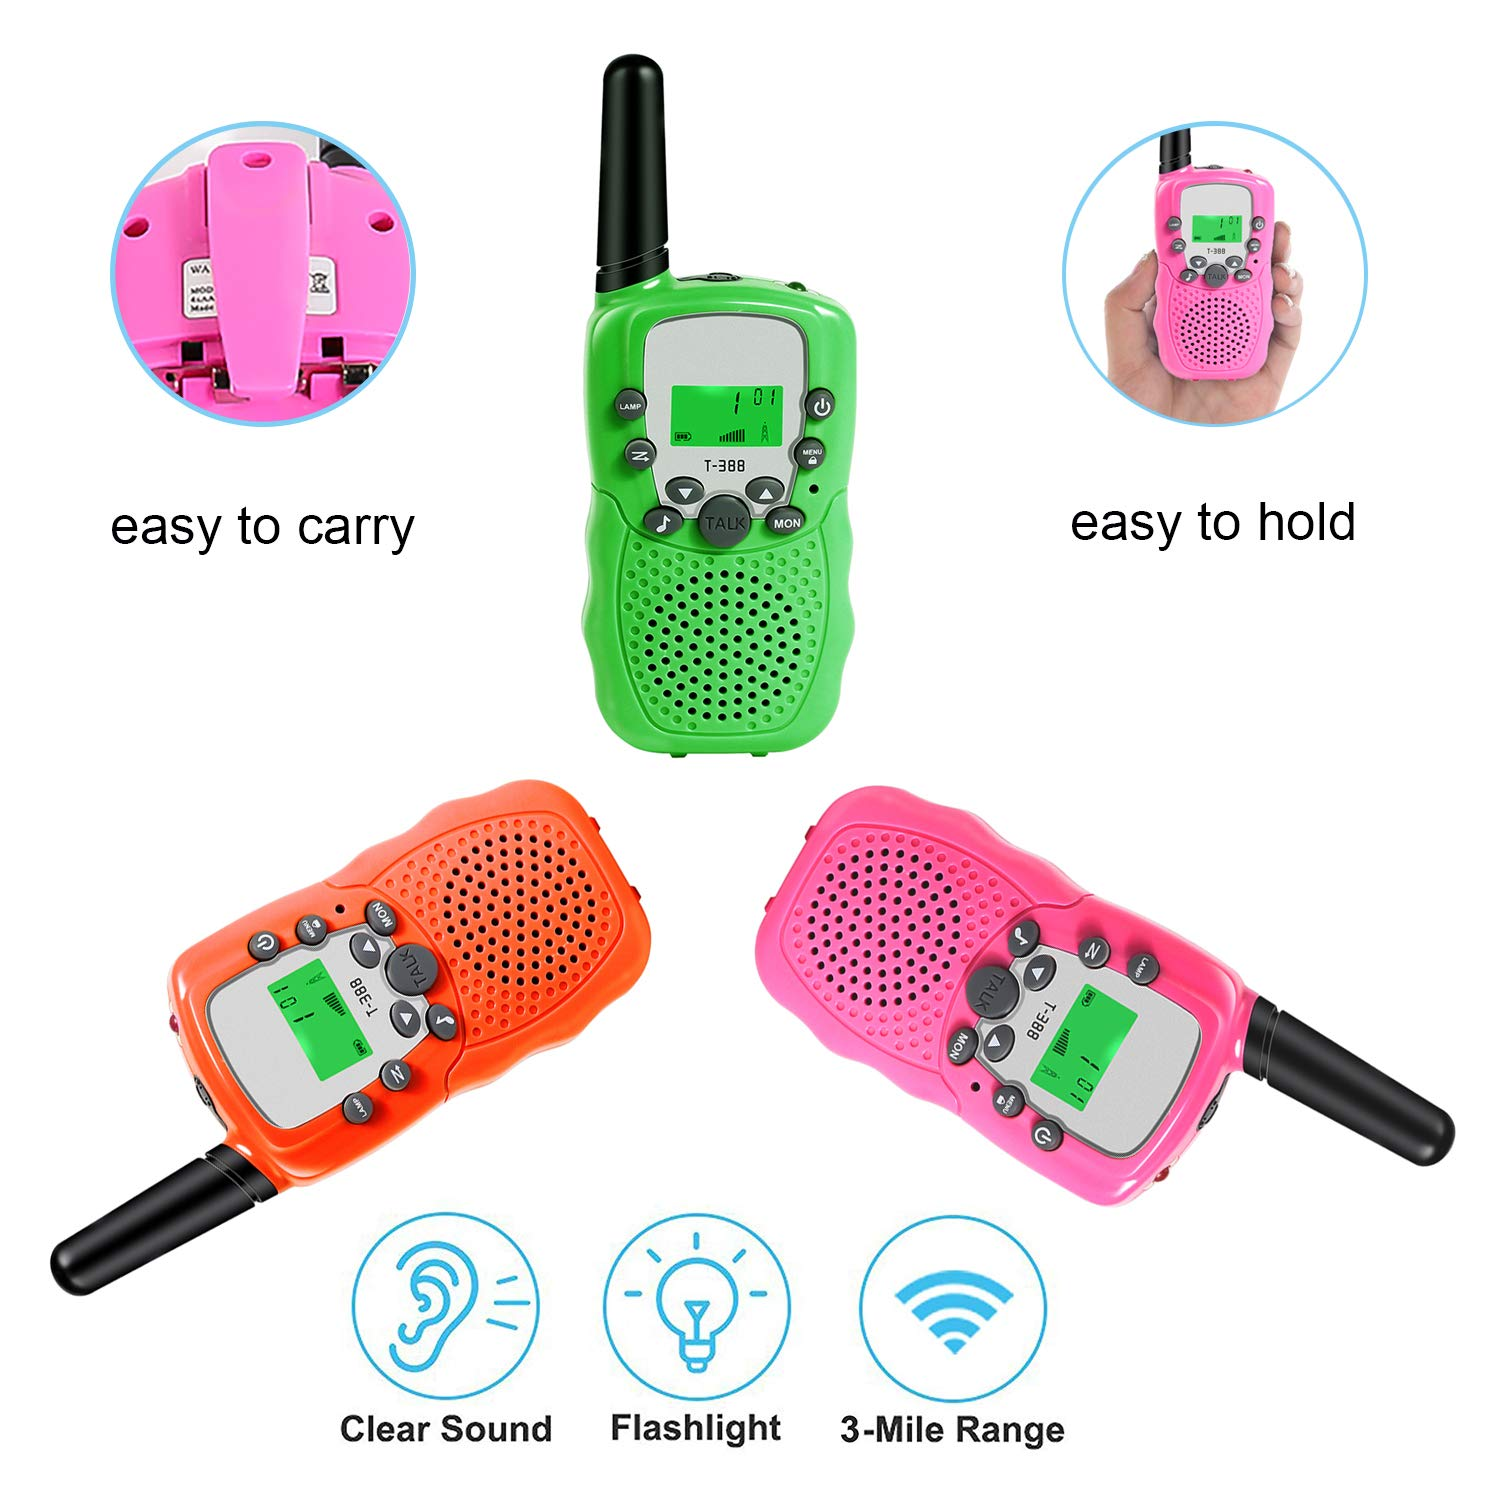 MOSUNECE Walkie Talkies for Kids Walkie Talkies 3 Miles Long Range 22 Channels 2 Way Radio Gifts for Kids Boys Girls T-388(3 Pack) by MOSUNECE (Image #5)